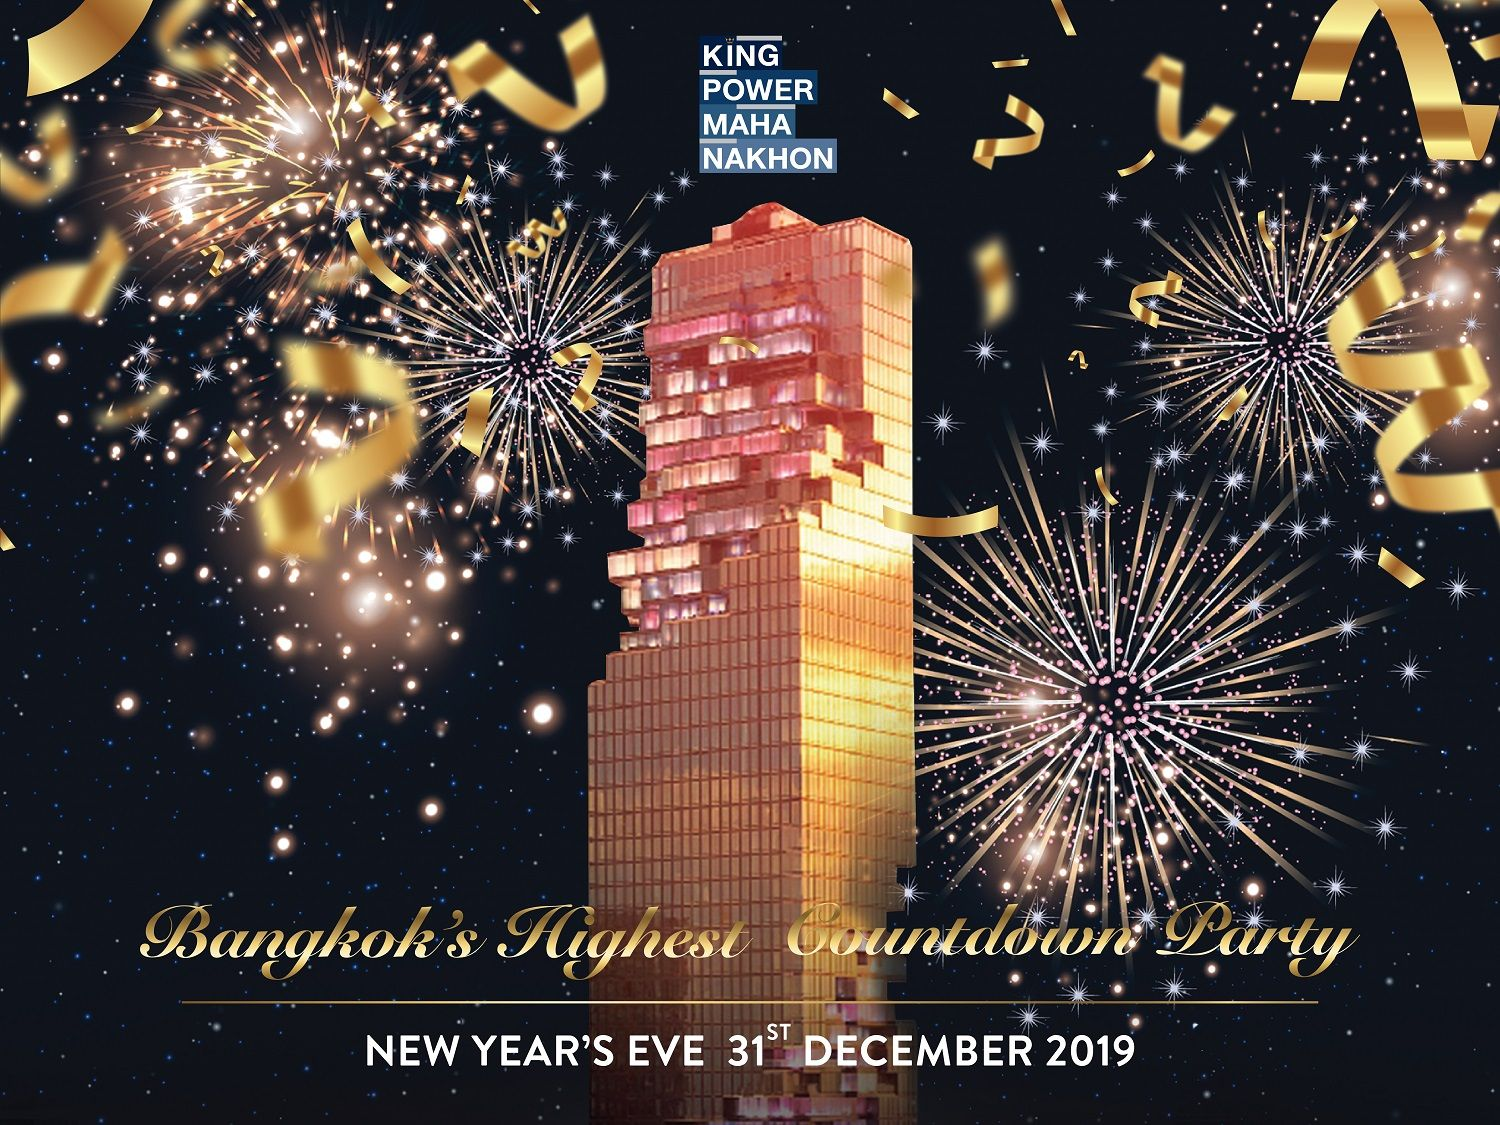 Why You Should Celebrate New Year's At Bangkok's Highest Countdown